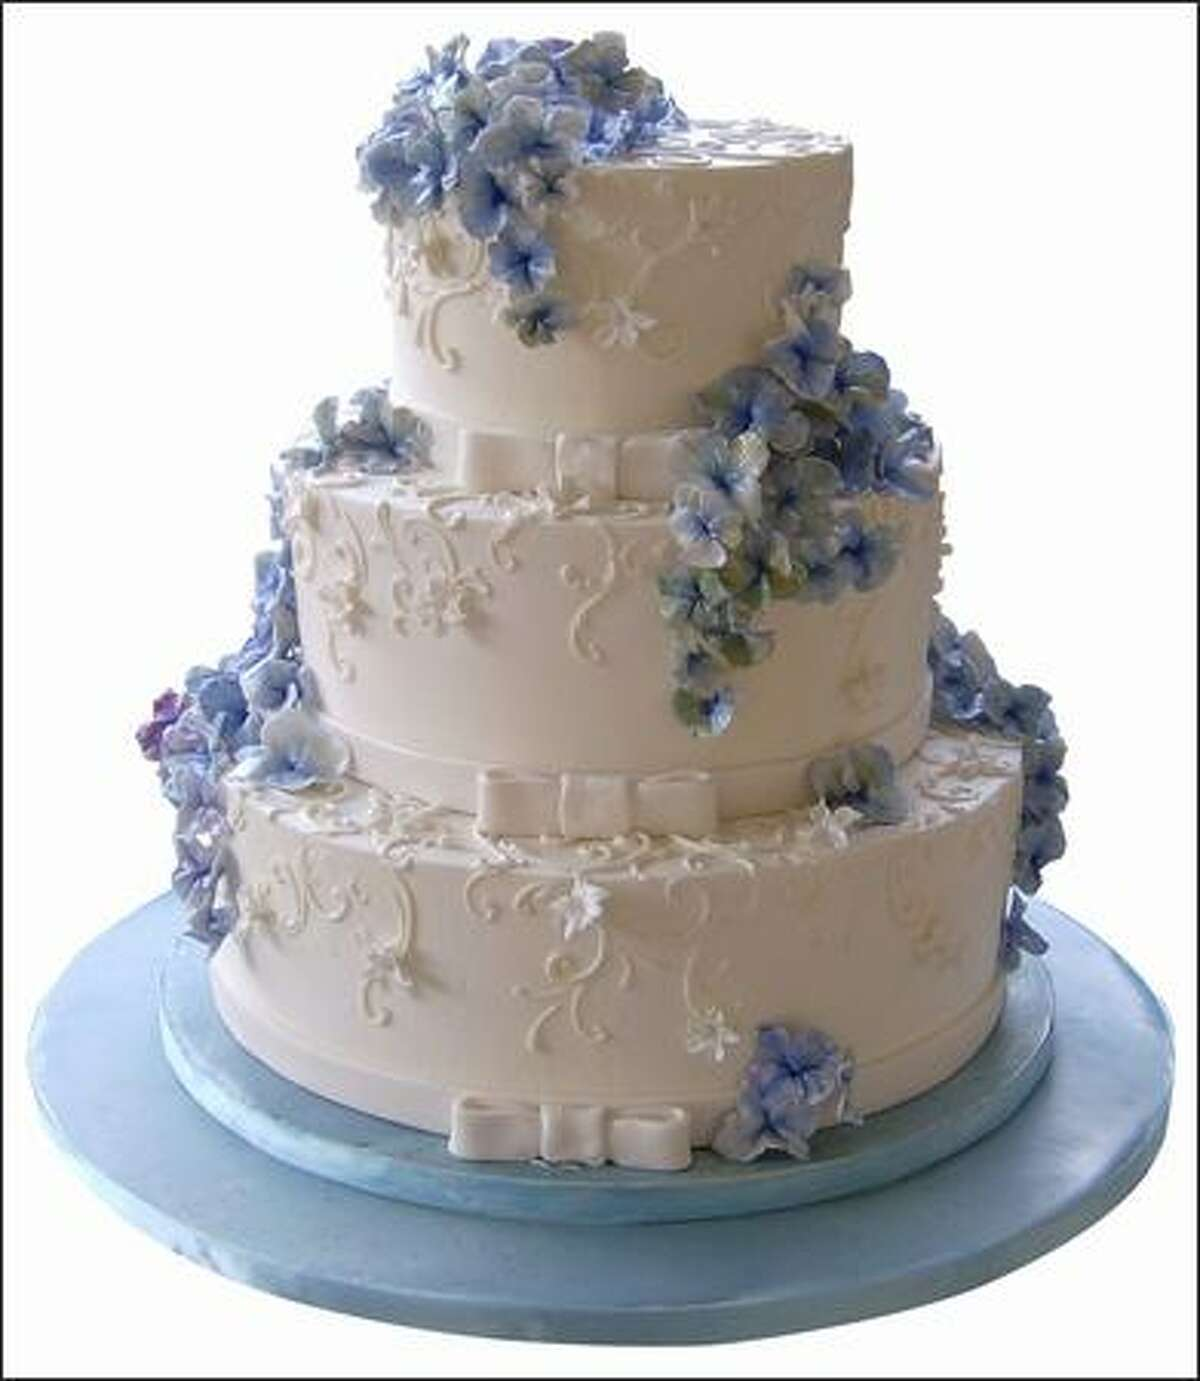 Aimee Page of Hollyhock Cakes created this organic work of art with sugar hydrangeas.